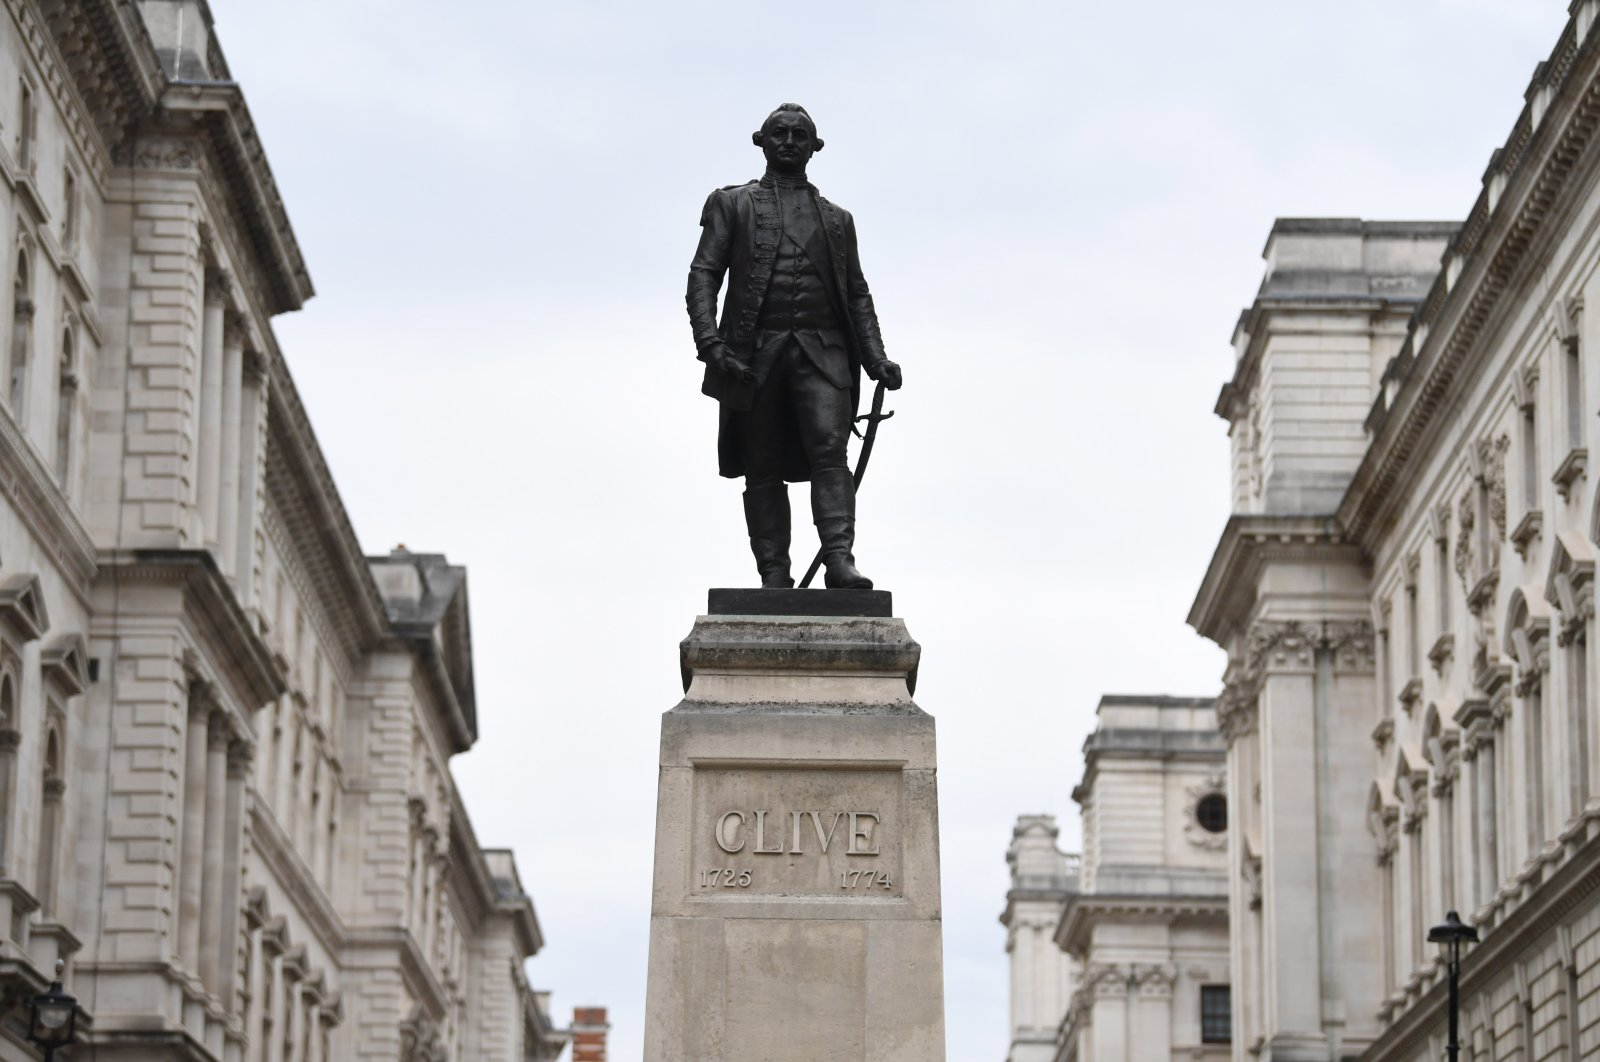 A statue of Robert Clive is displayed in Whitehall in London, Britain, on 10 June 2020. Clive was the Governor of Bengal and helped the British Empire gain control of large areas of India. (EPA Photo)